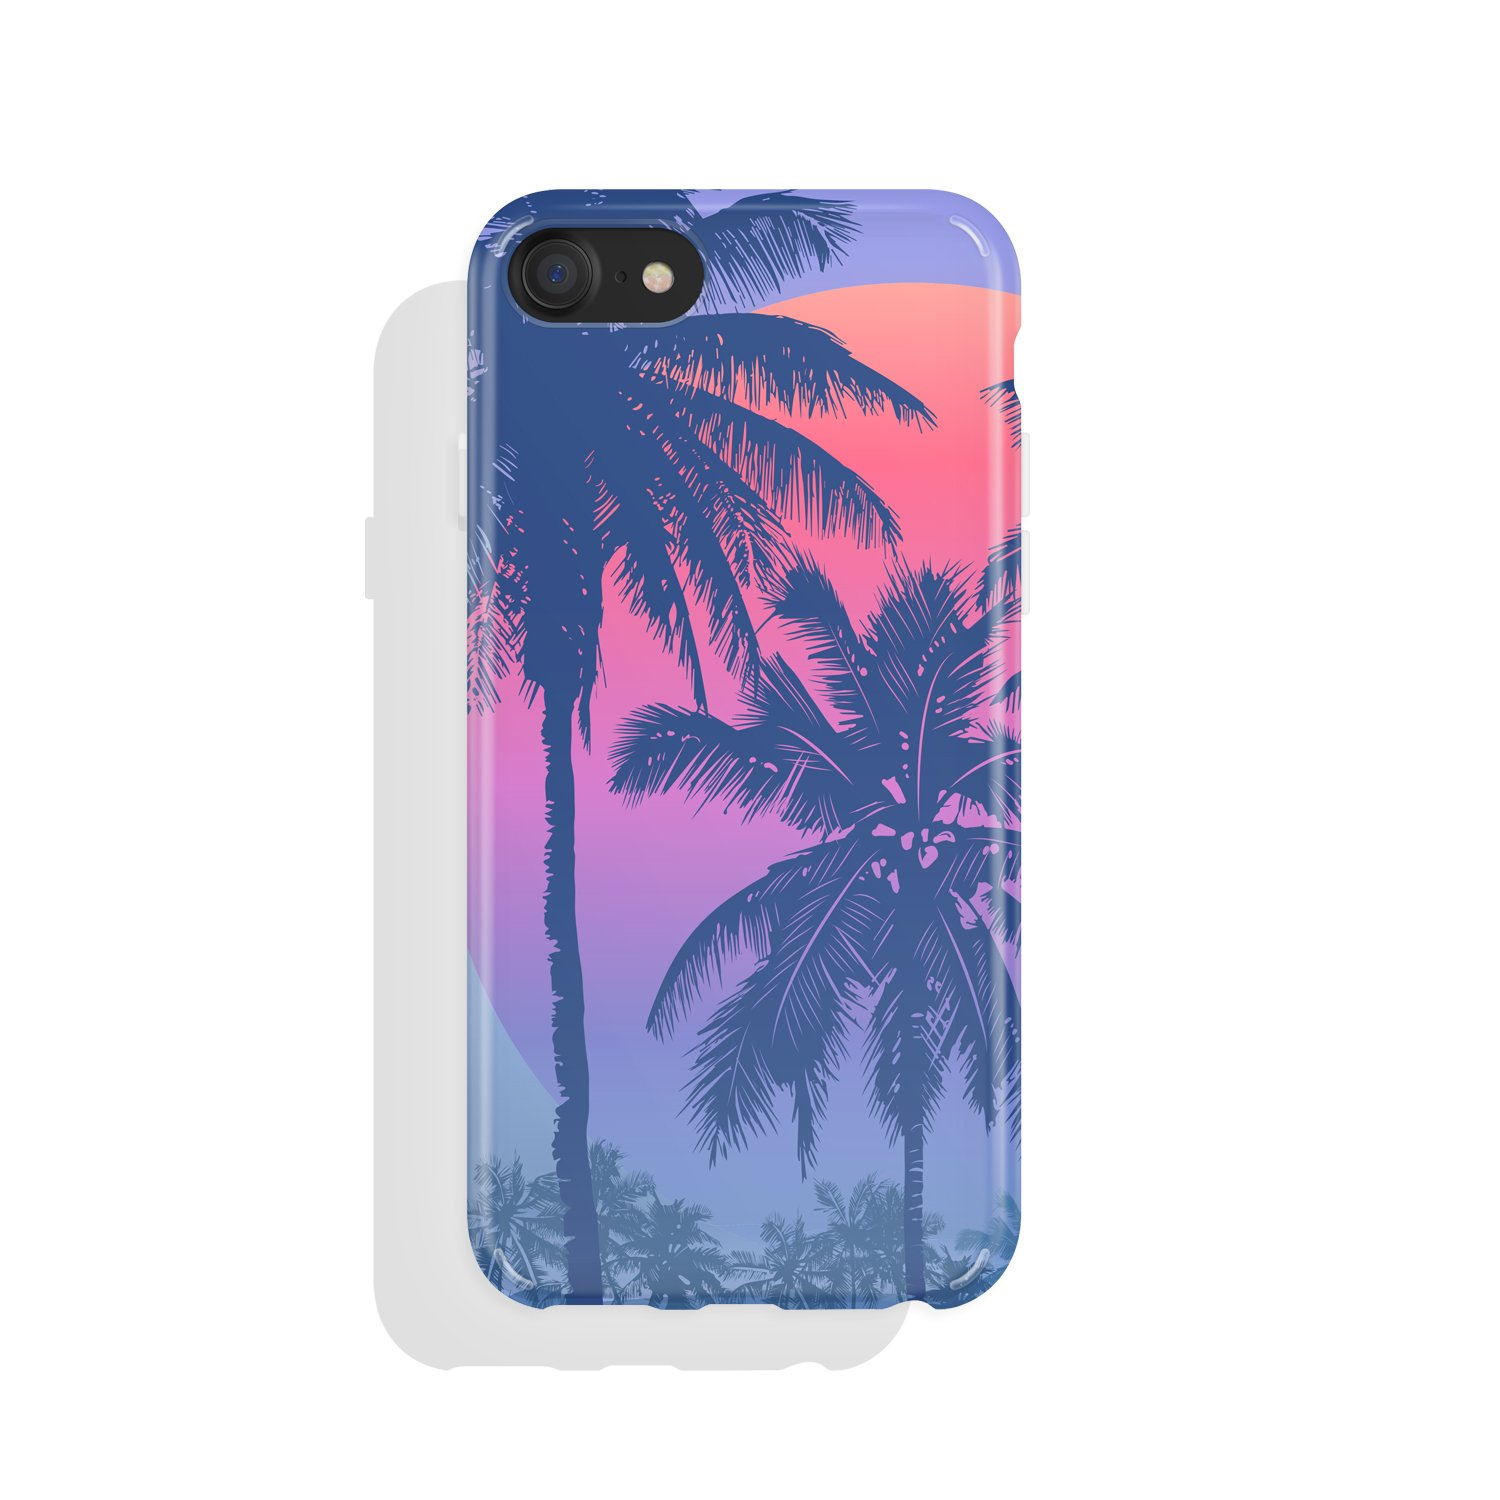 iPhone 8 & iPhone 7 Case for girls, Akna Charming Series High Impact Silicon Cover with HD Graphics for iPhone 8 & iPhone 7 (101276-U.S)